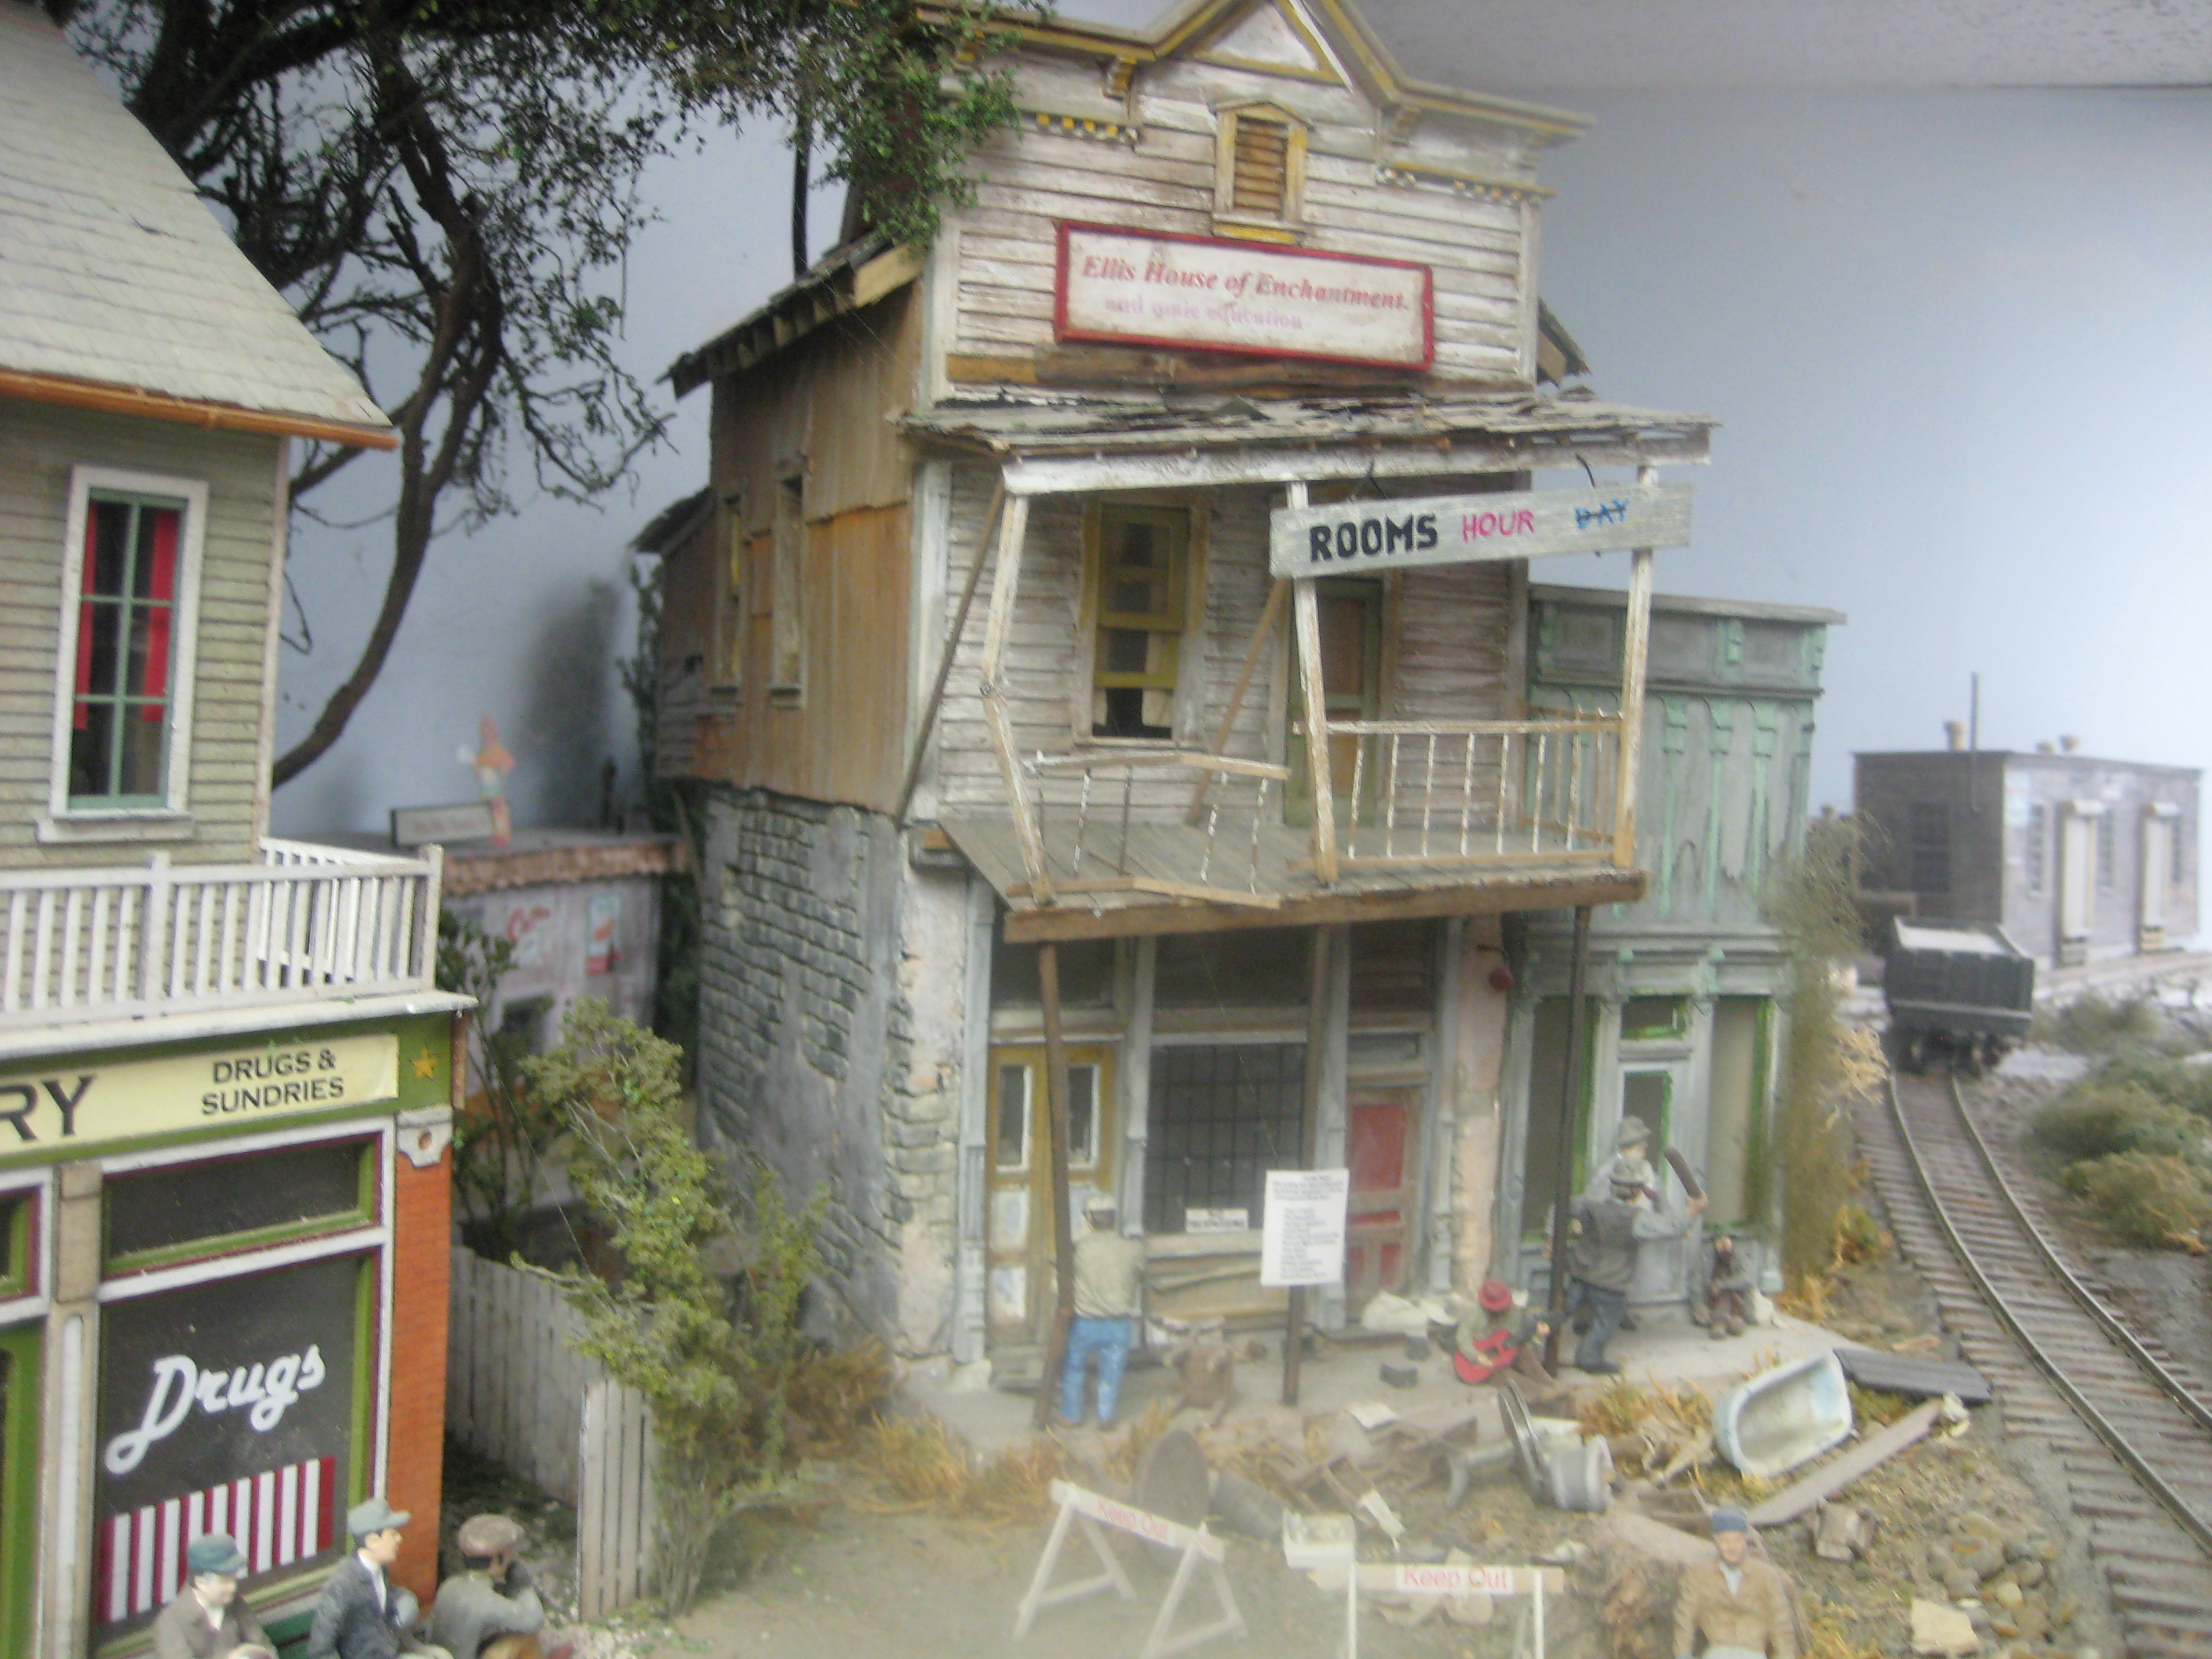 More stunning pics from Tom - Model railroad layouts